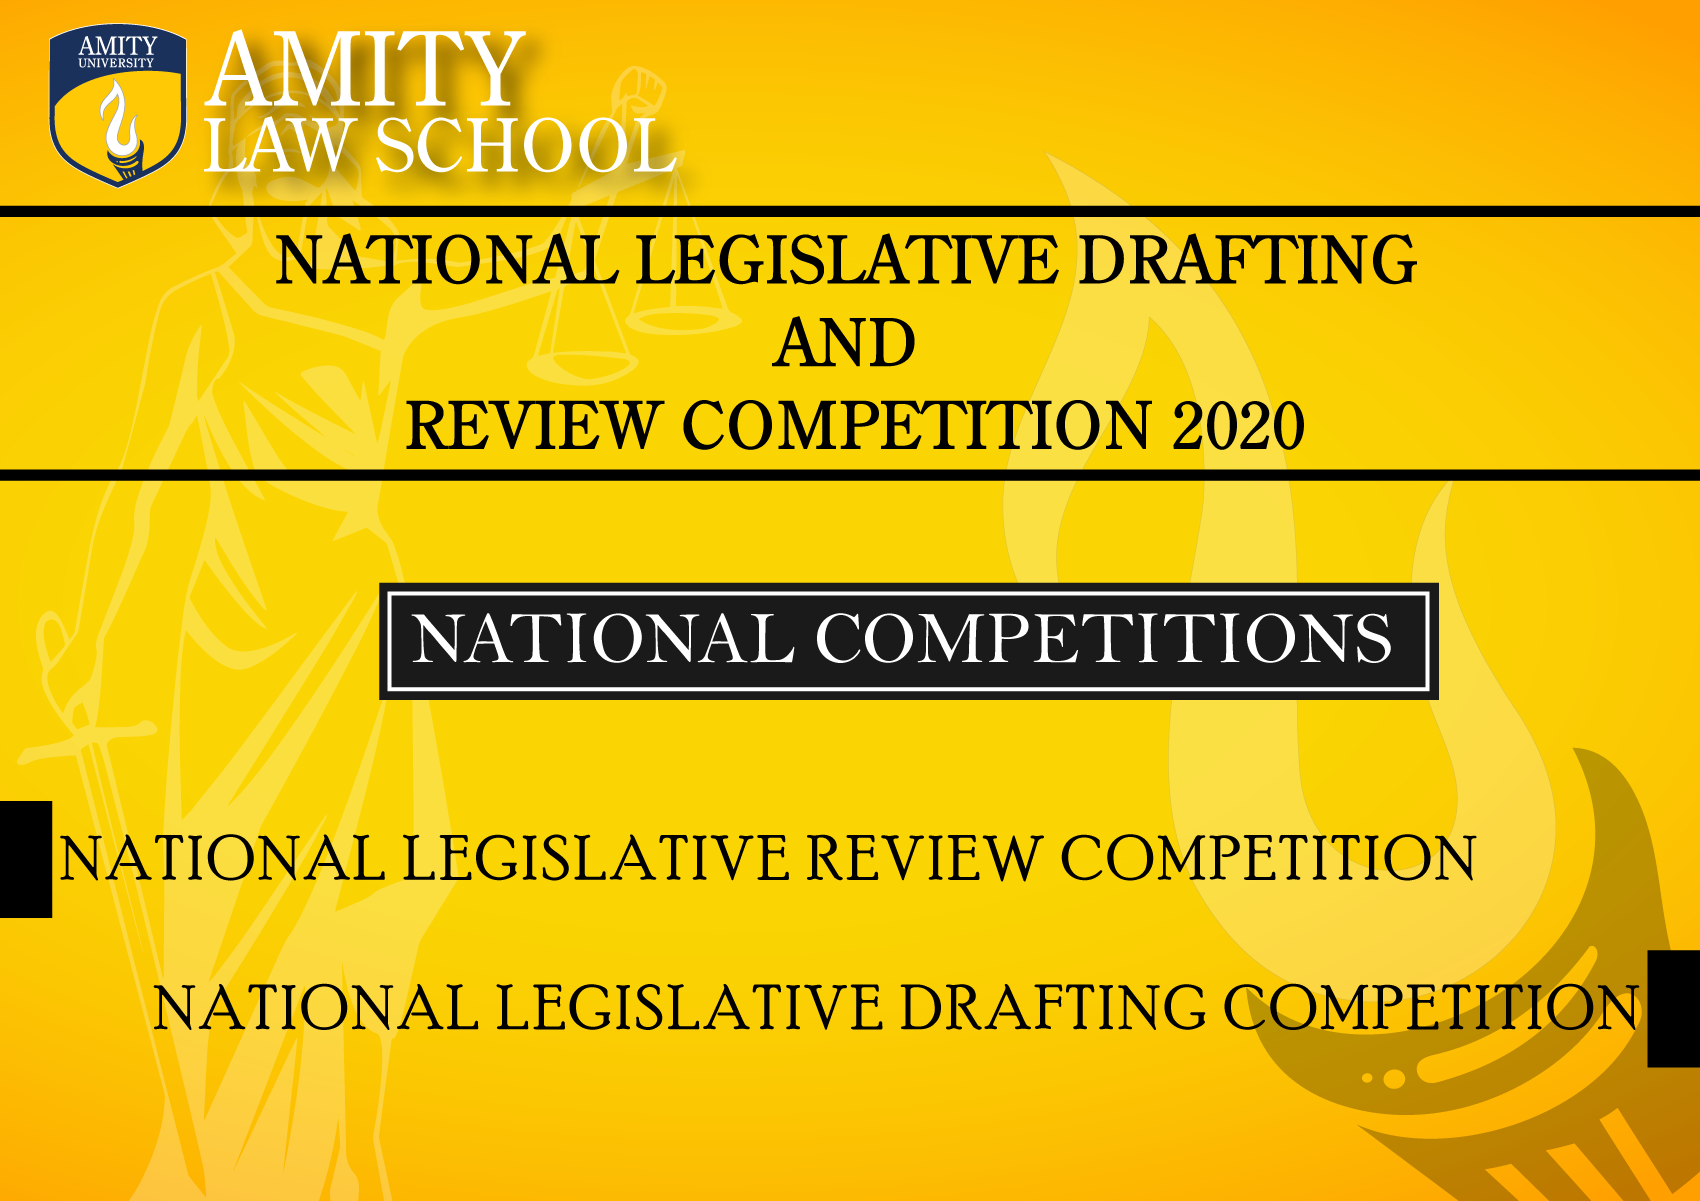 Legislative Drafting and Review Competition at Amity Law School Haryana